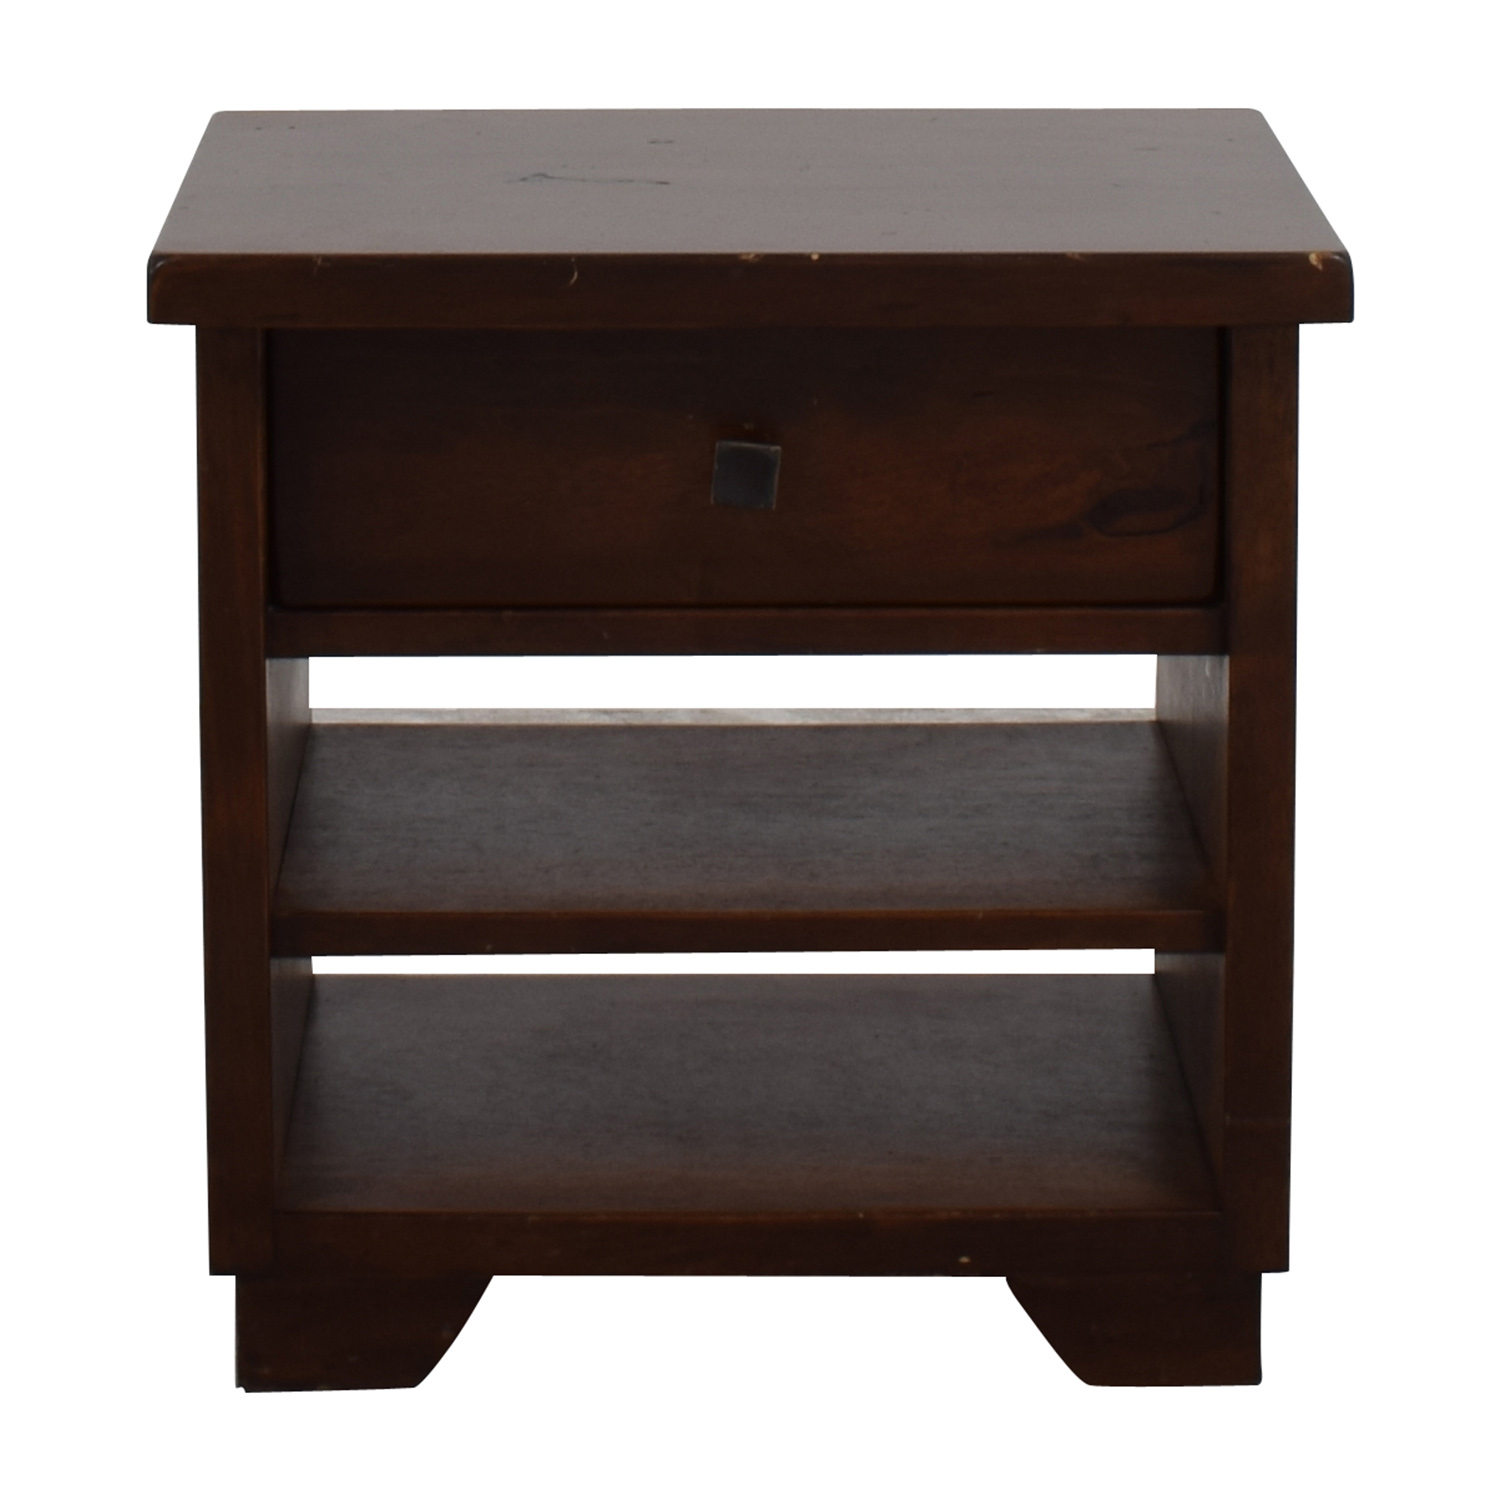 buy Pottery Barn One-Drawer Bedside Table Pottery Barn